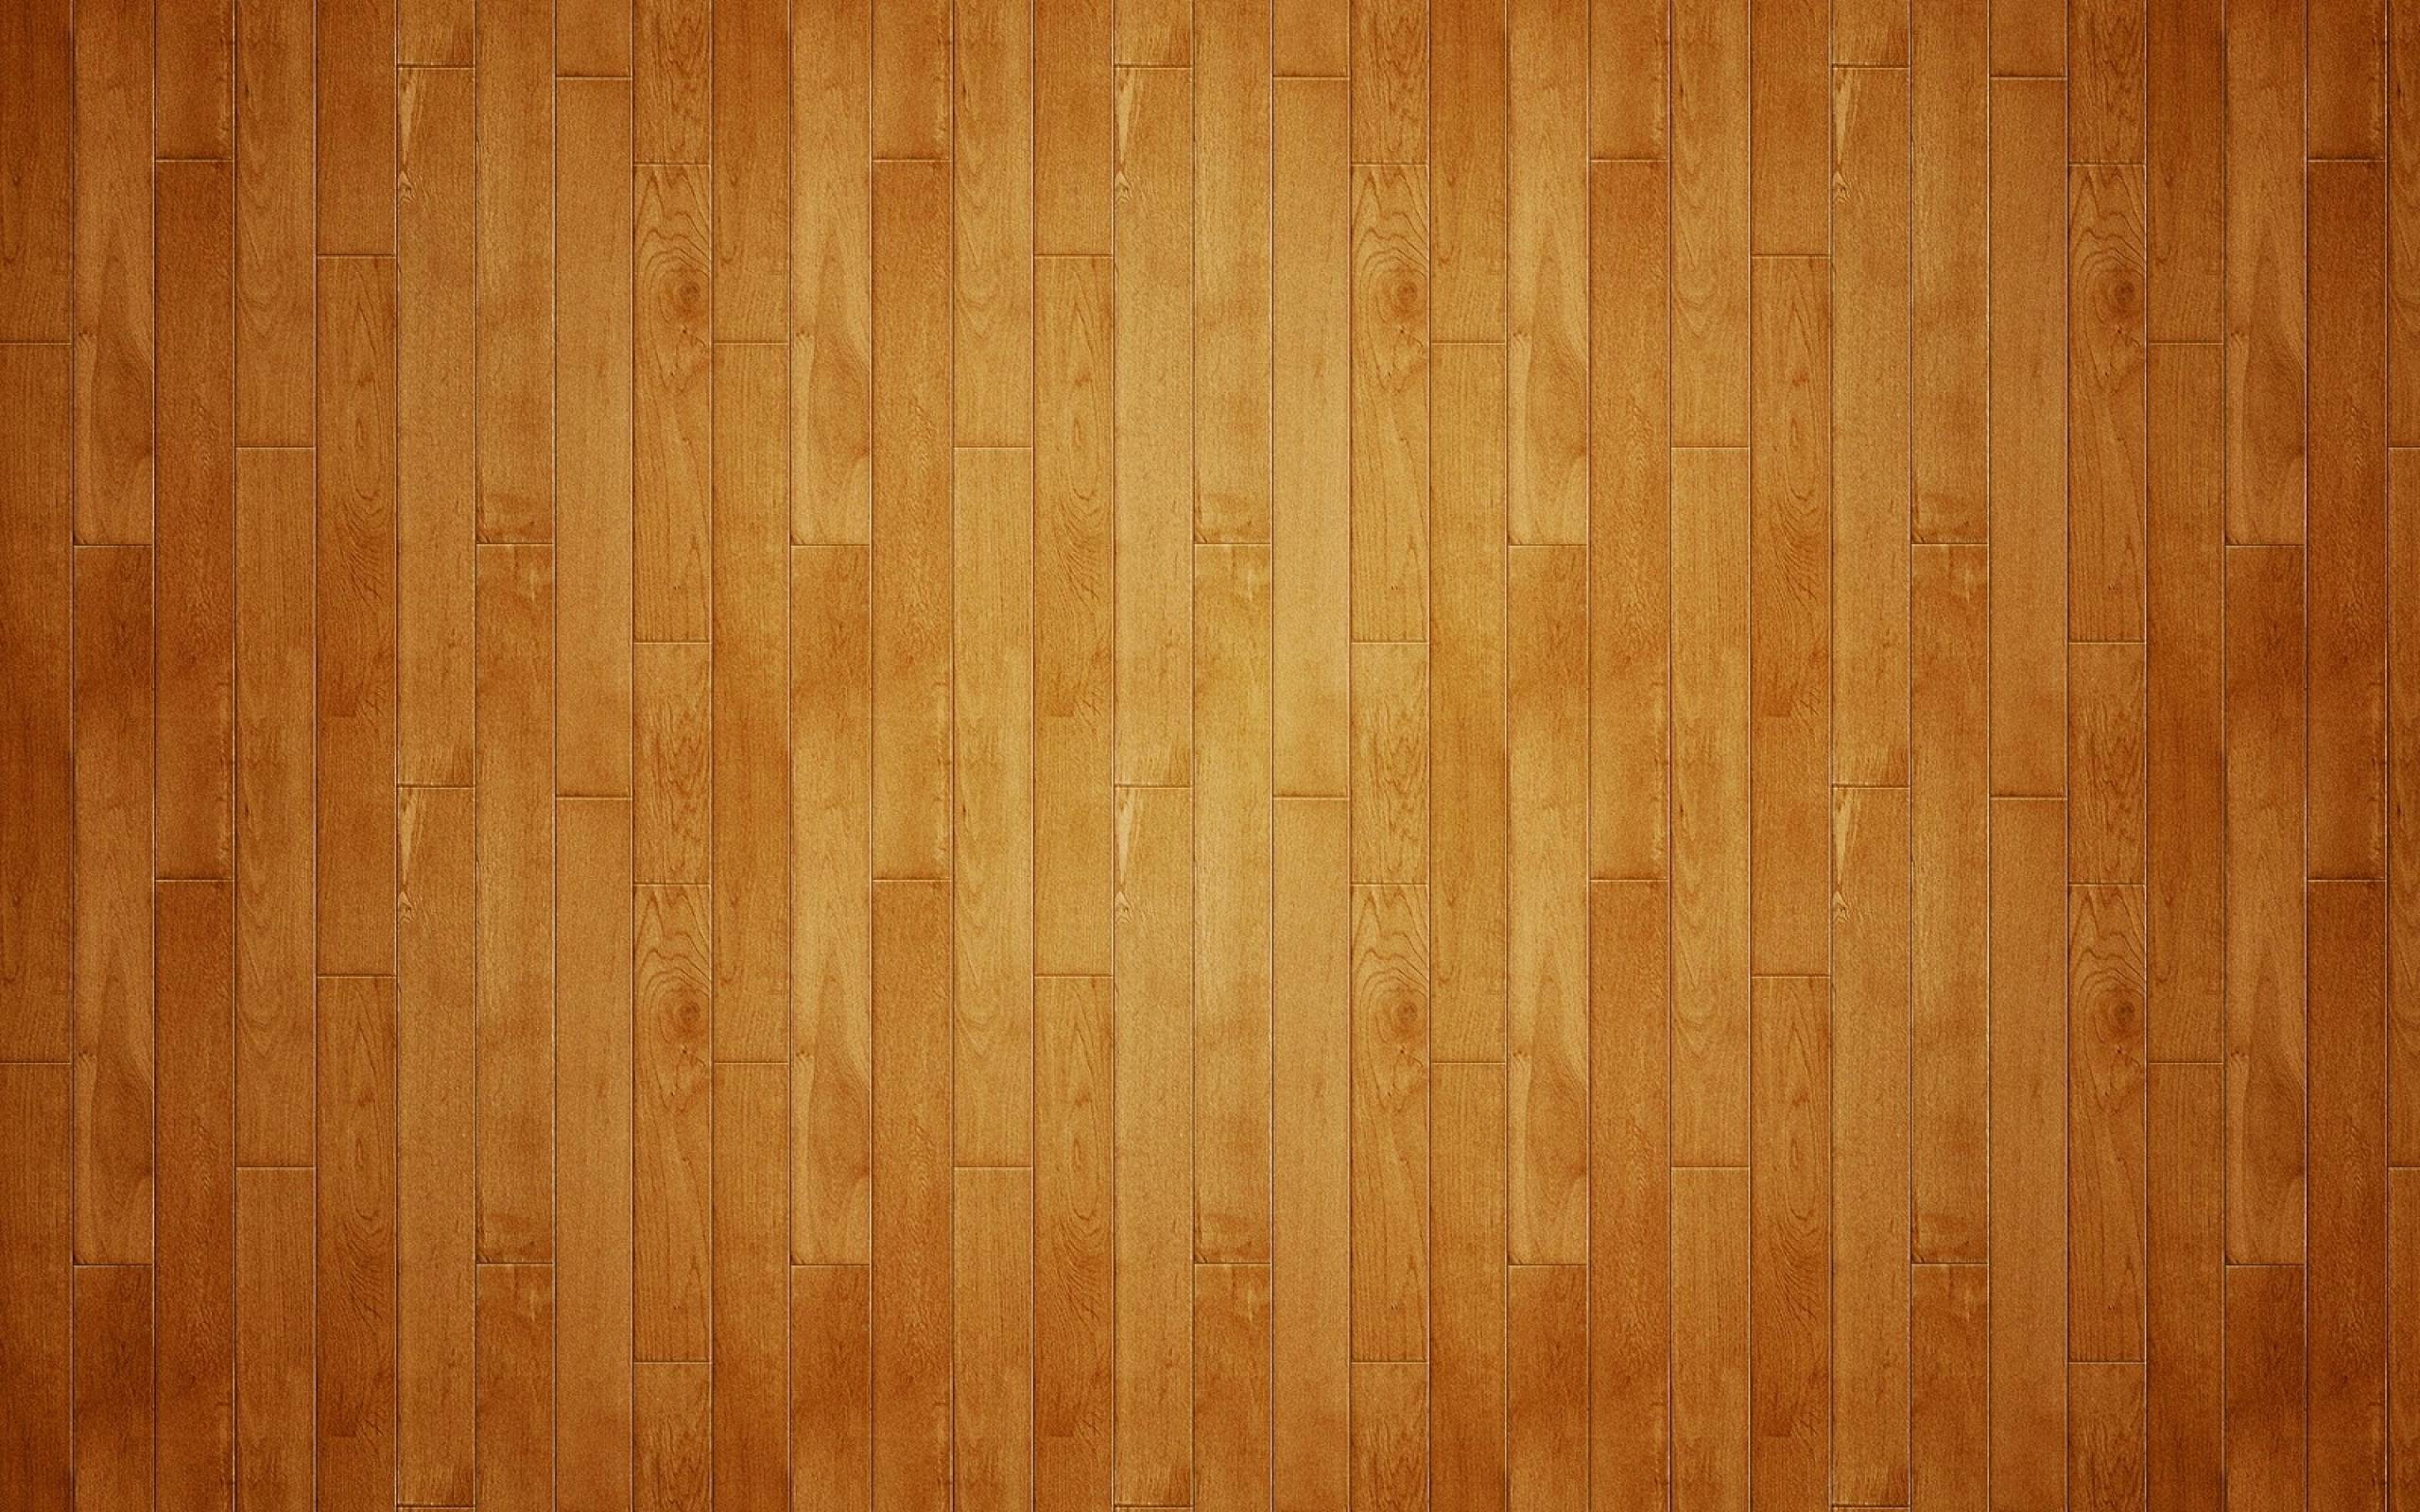 HD Wood Backgrounds 2560x1600